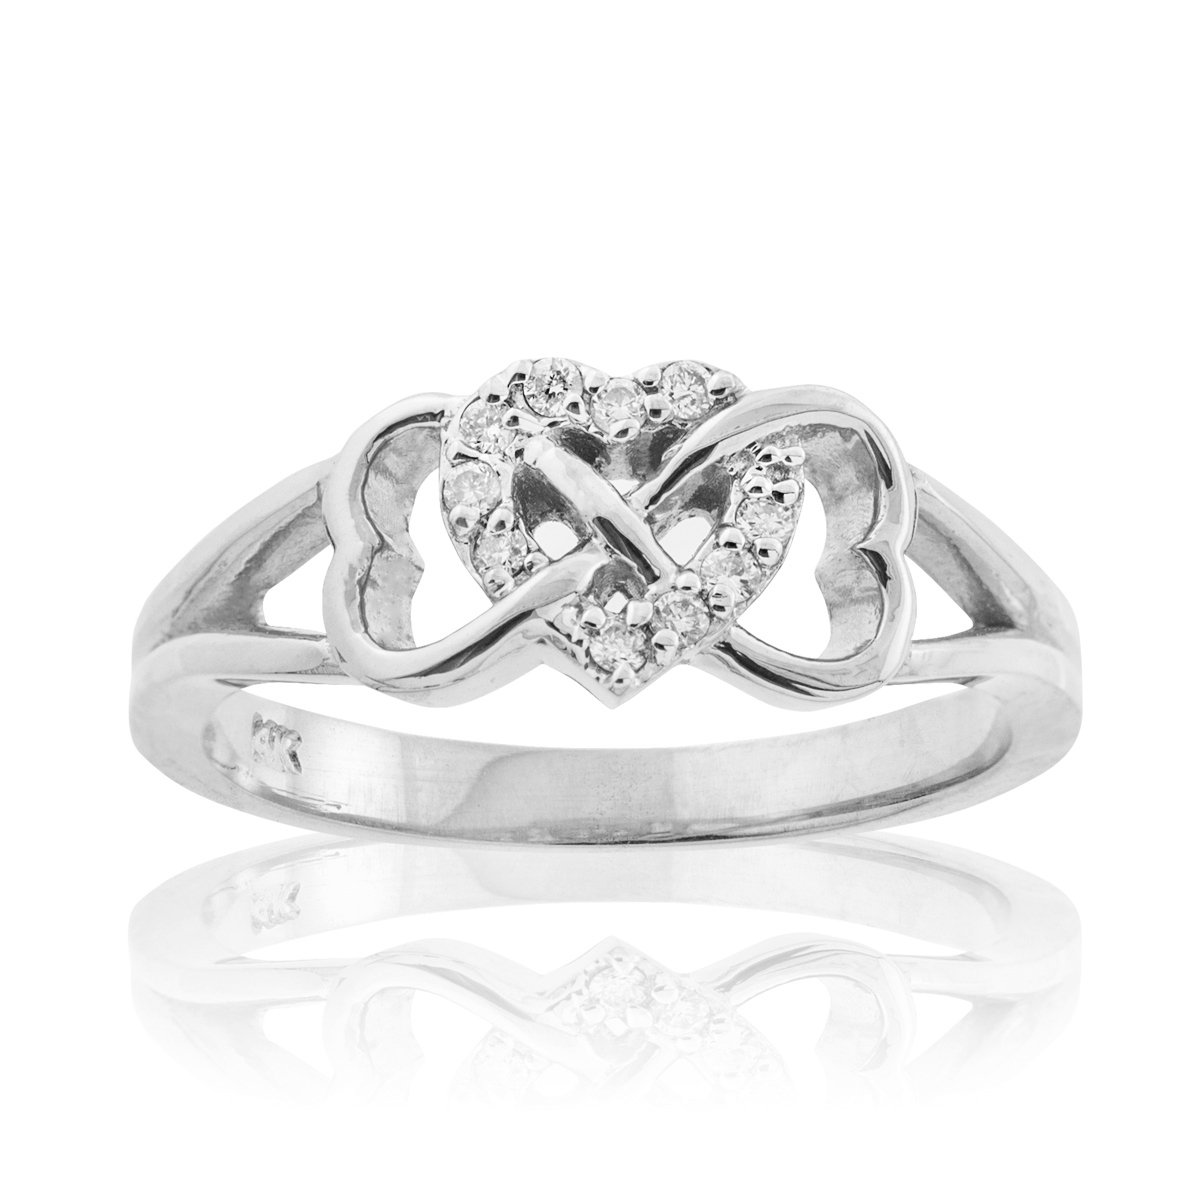 Solid 10k White Gold Diamond Triple Heart Infinity Ring (Size 5.5) by Unknown